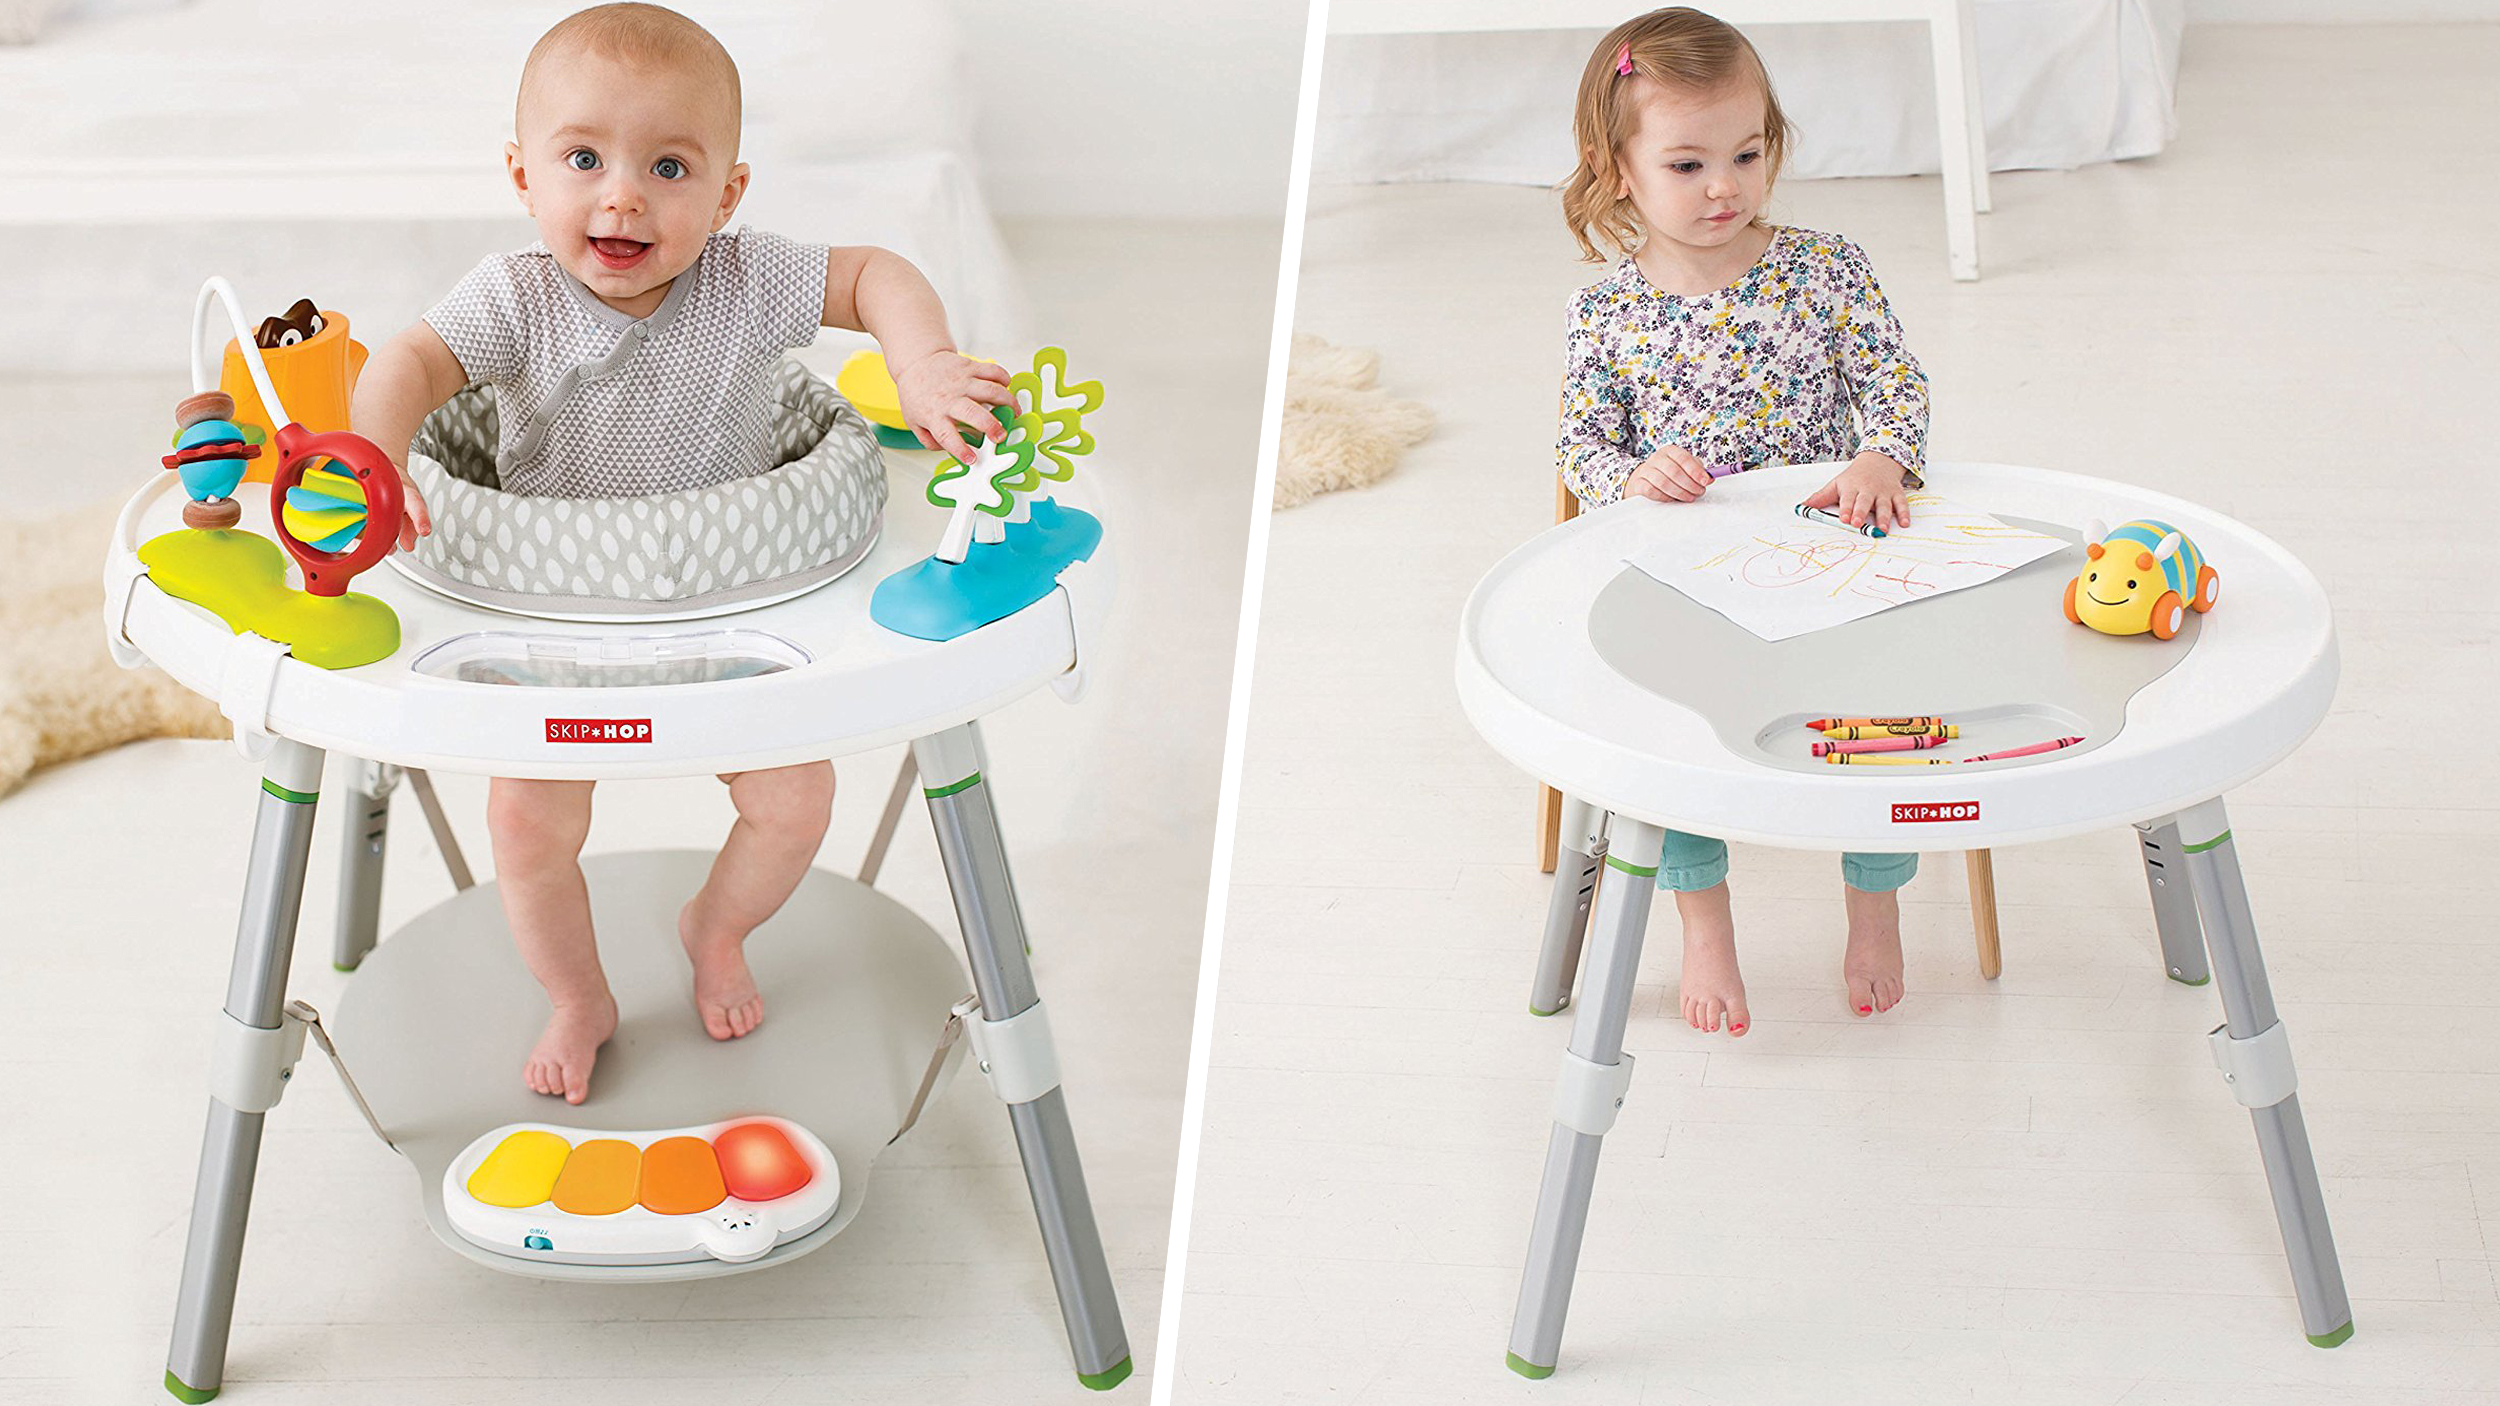 24d1d51d7e02 Skip Hop Explore and More Baby Activity Center Review